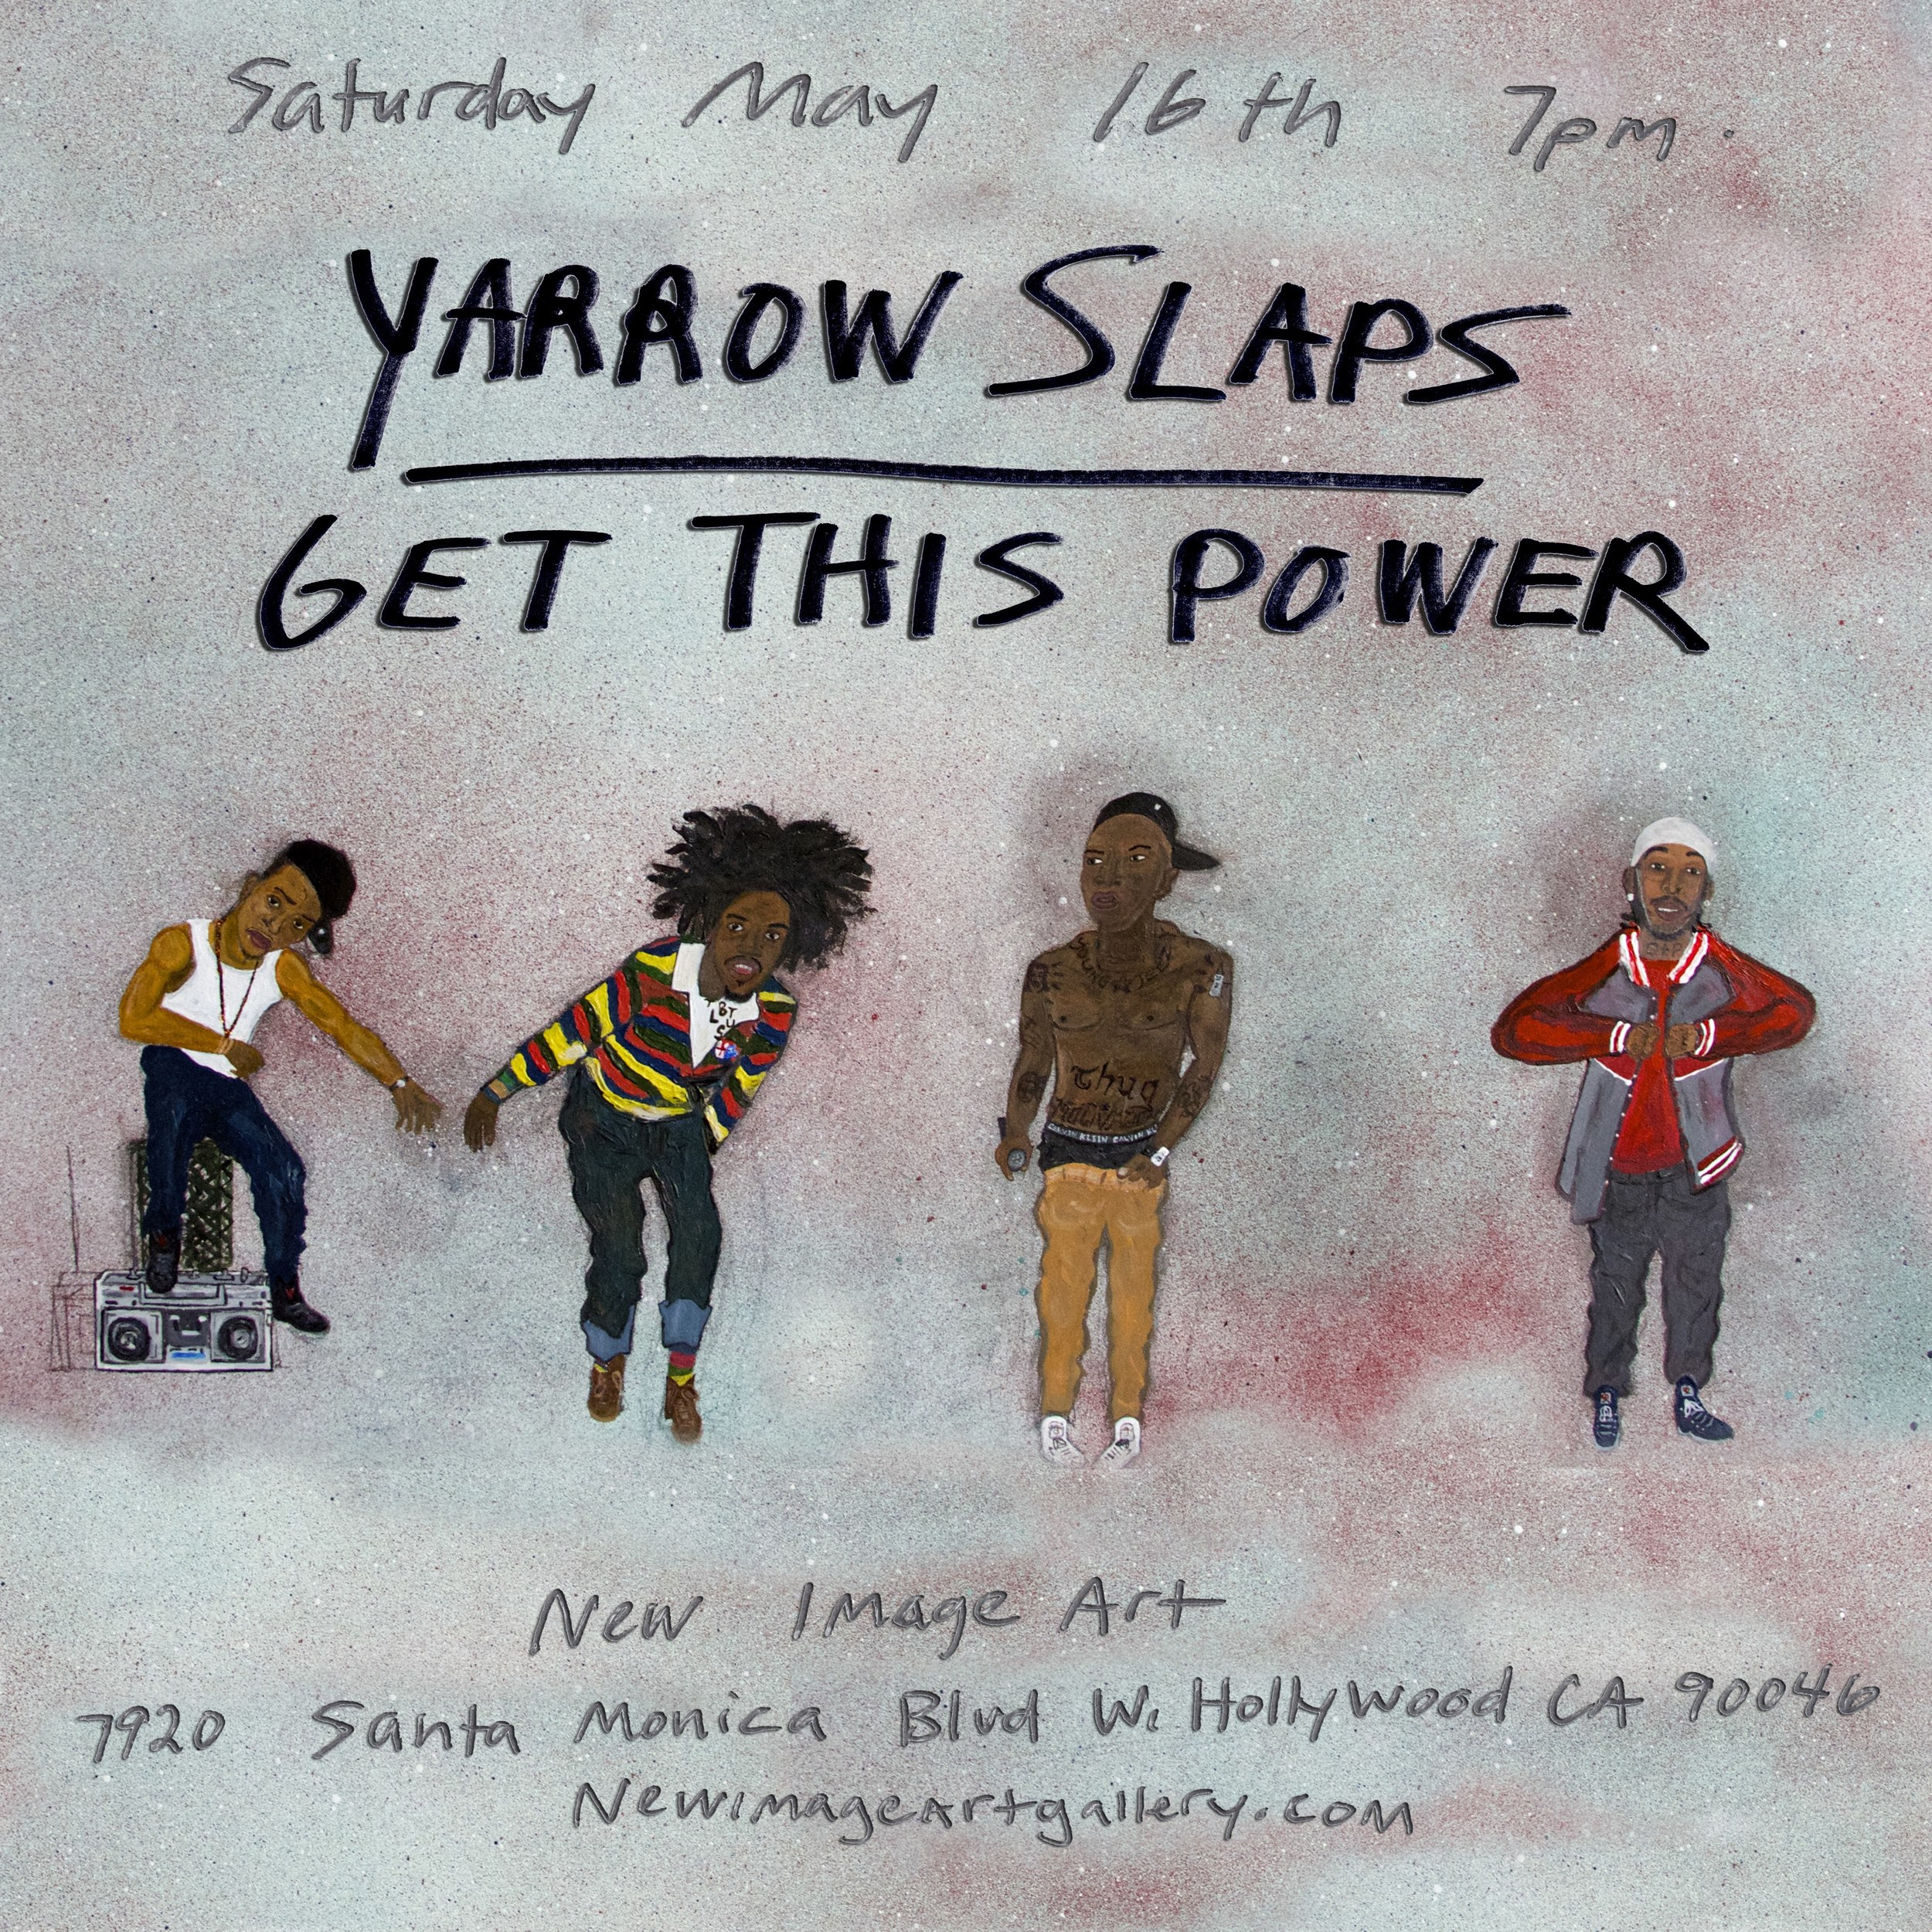 YARROW SLAPS - GET THIS POWER